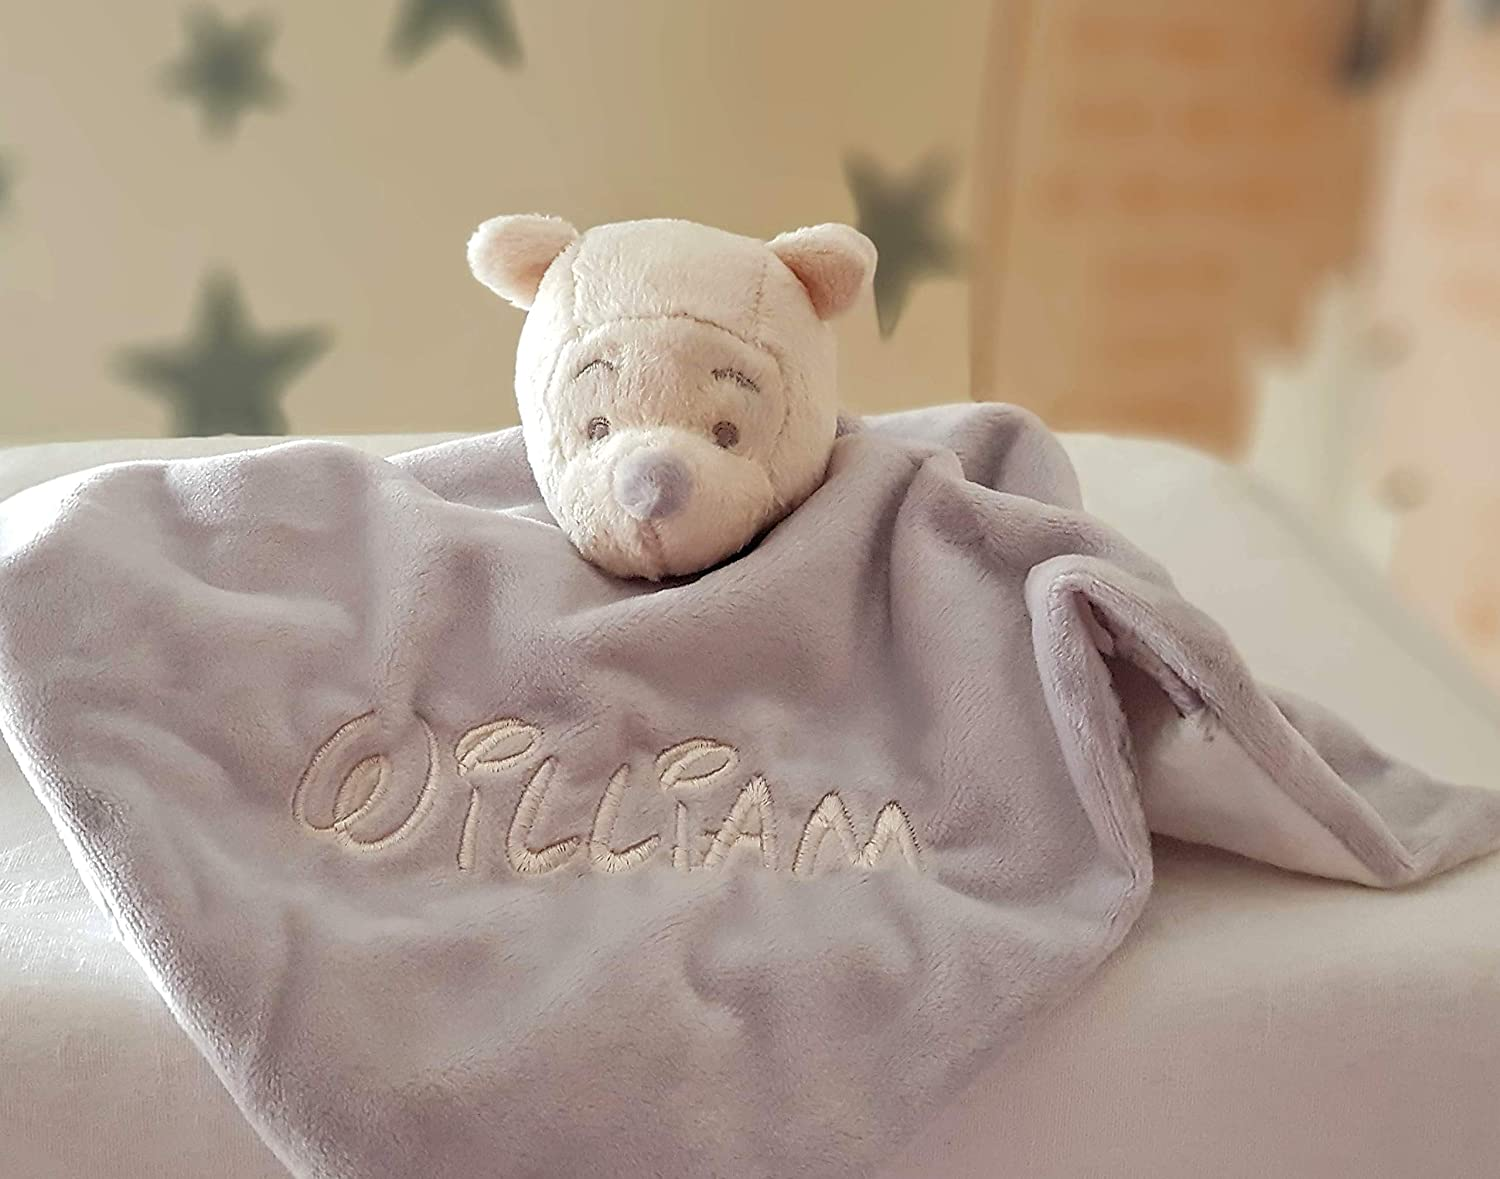 Personalised Disney Grey Winnie The Pooh Baby Comforter / Baby Blanket / Soother Blanket / New Baby Gift